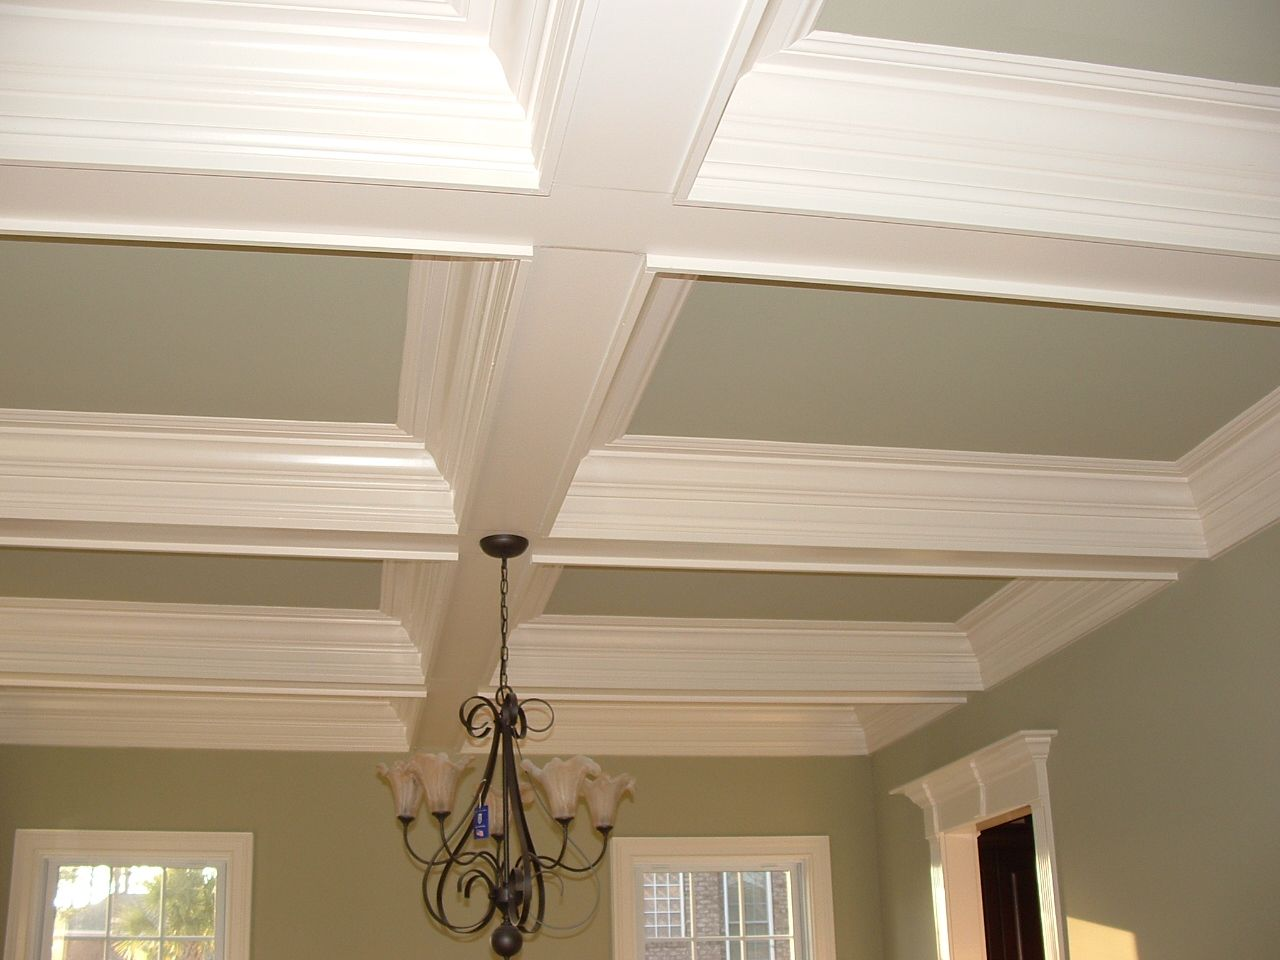 Crown Molding Vaulted Ceiling With Beams Ceiling Trim